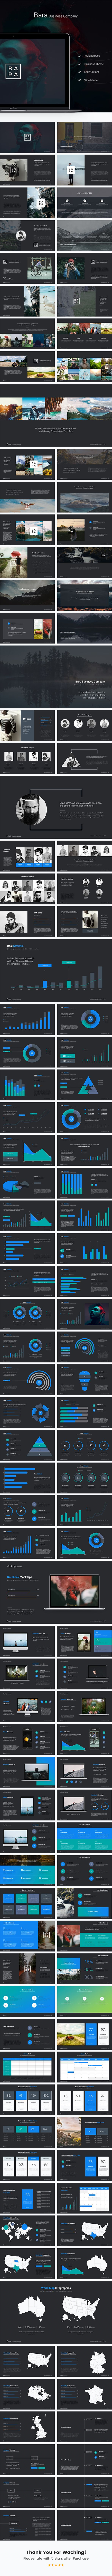 Bara Business Company PowerPoint Template